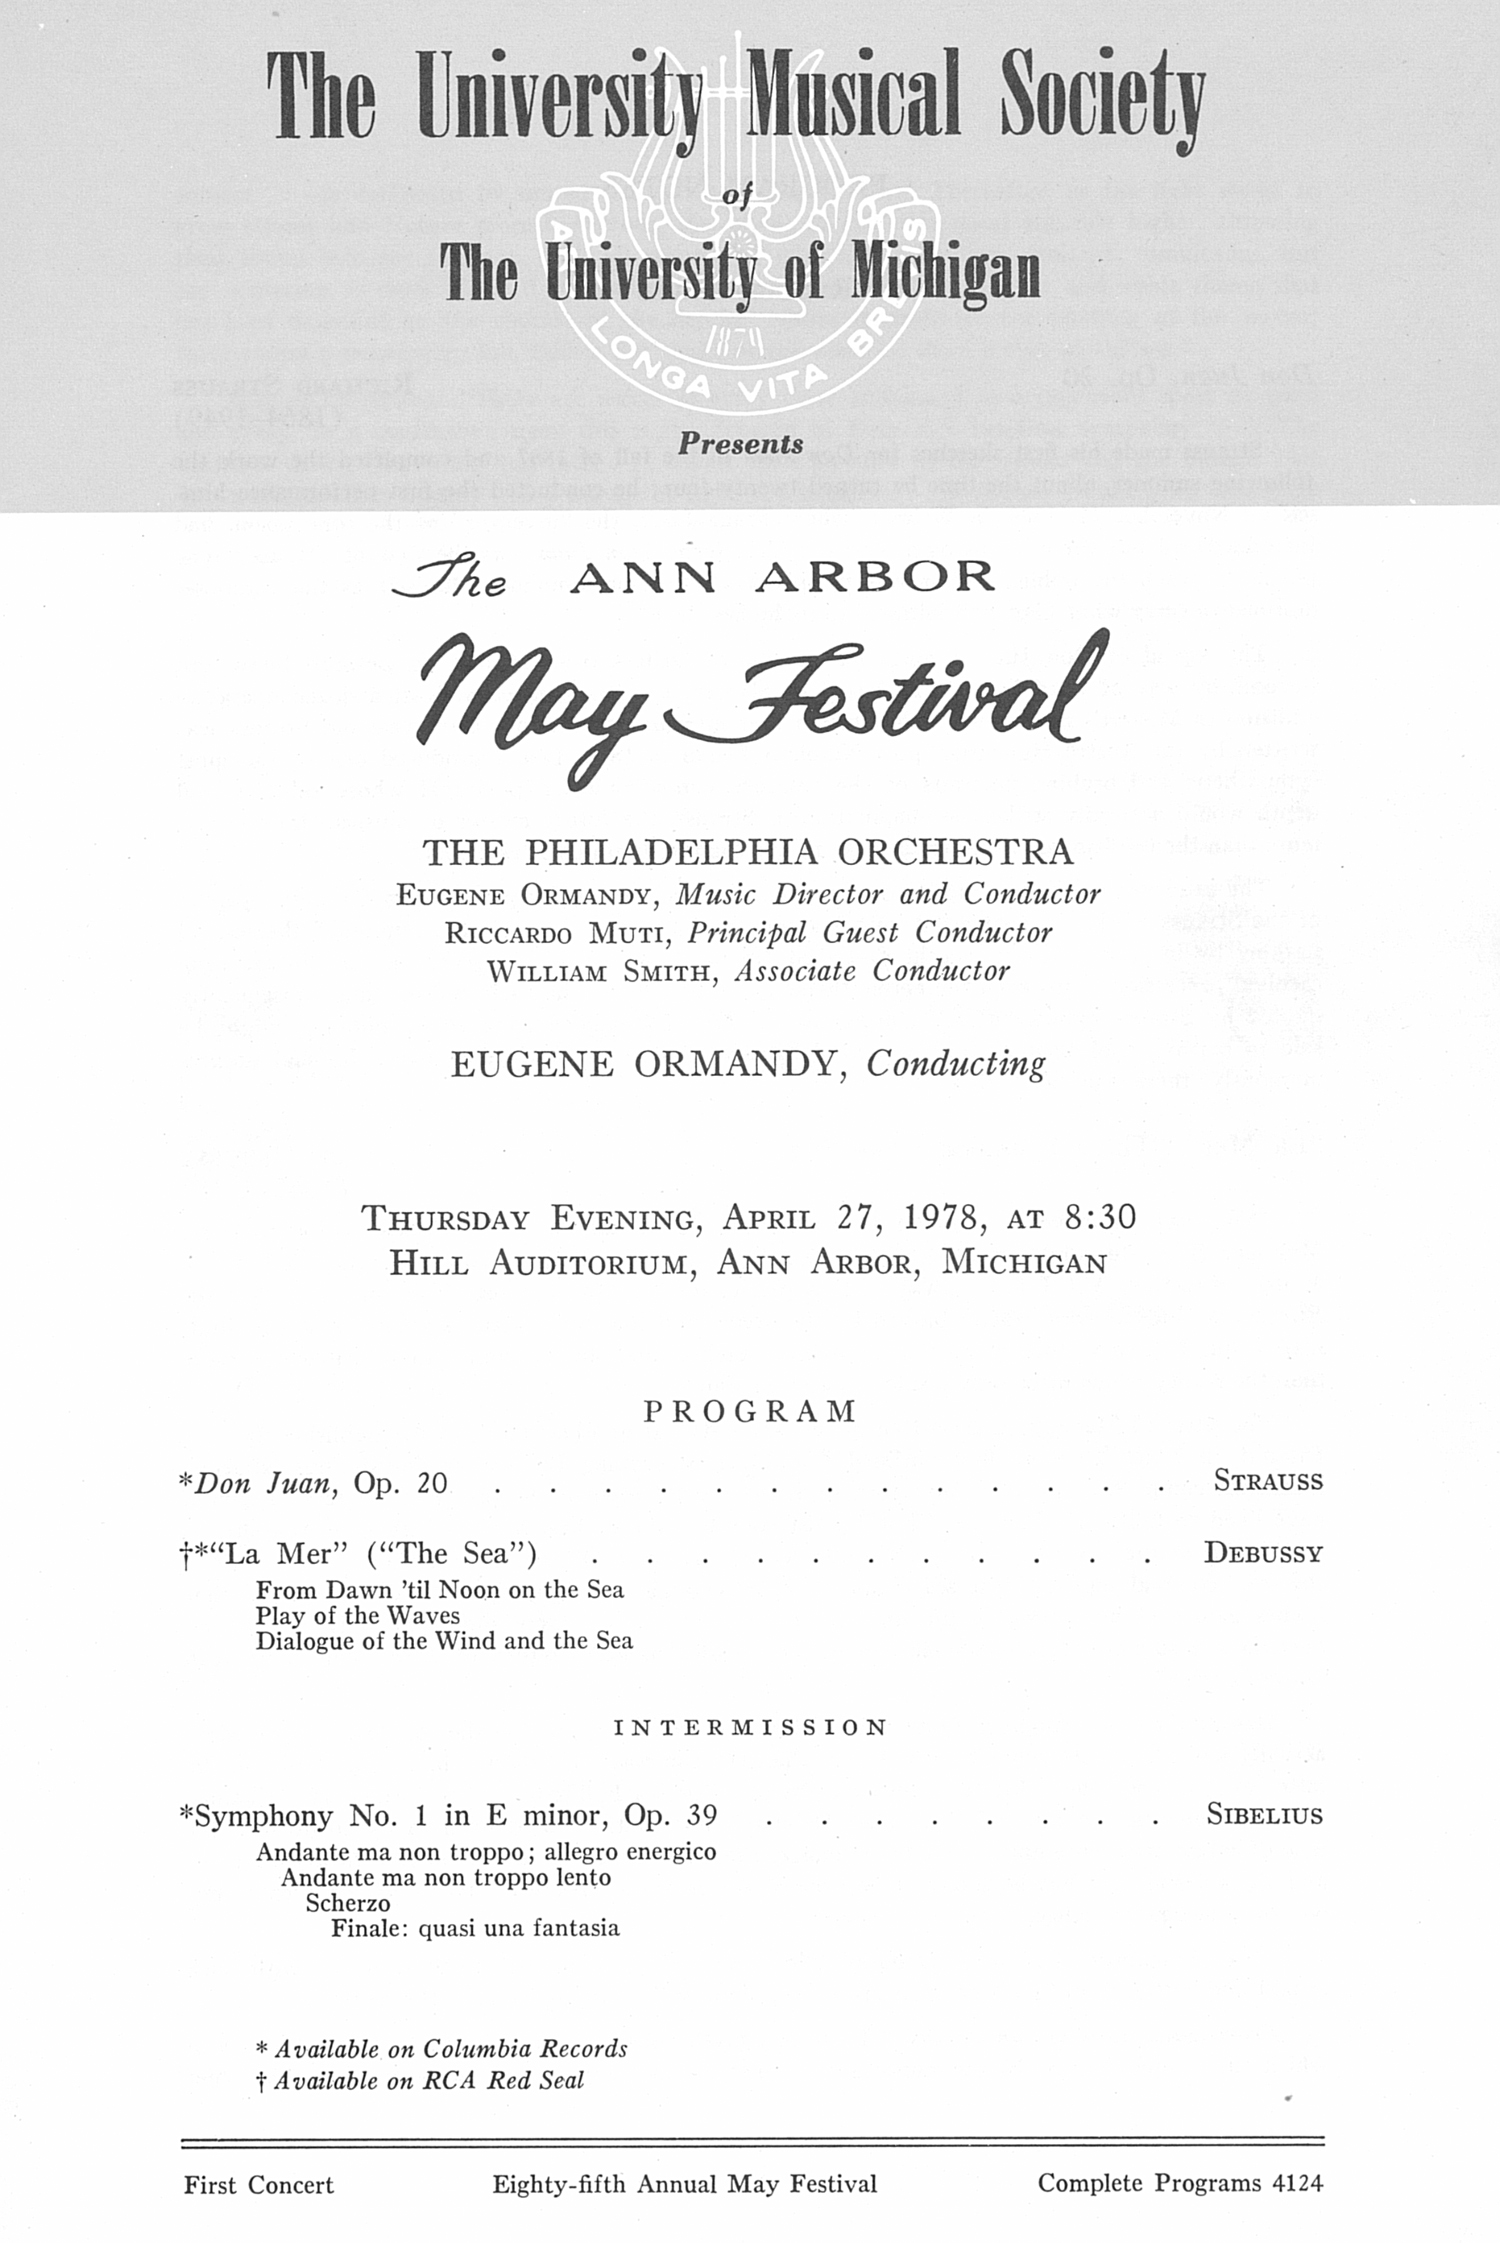 UMS Concert Program, April 27, 1978: The Ann Arbor May Festival -- The Philadelphia Orchestra image